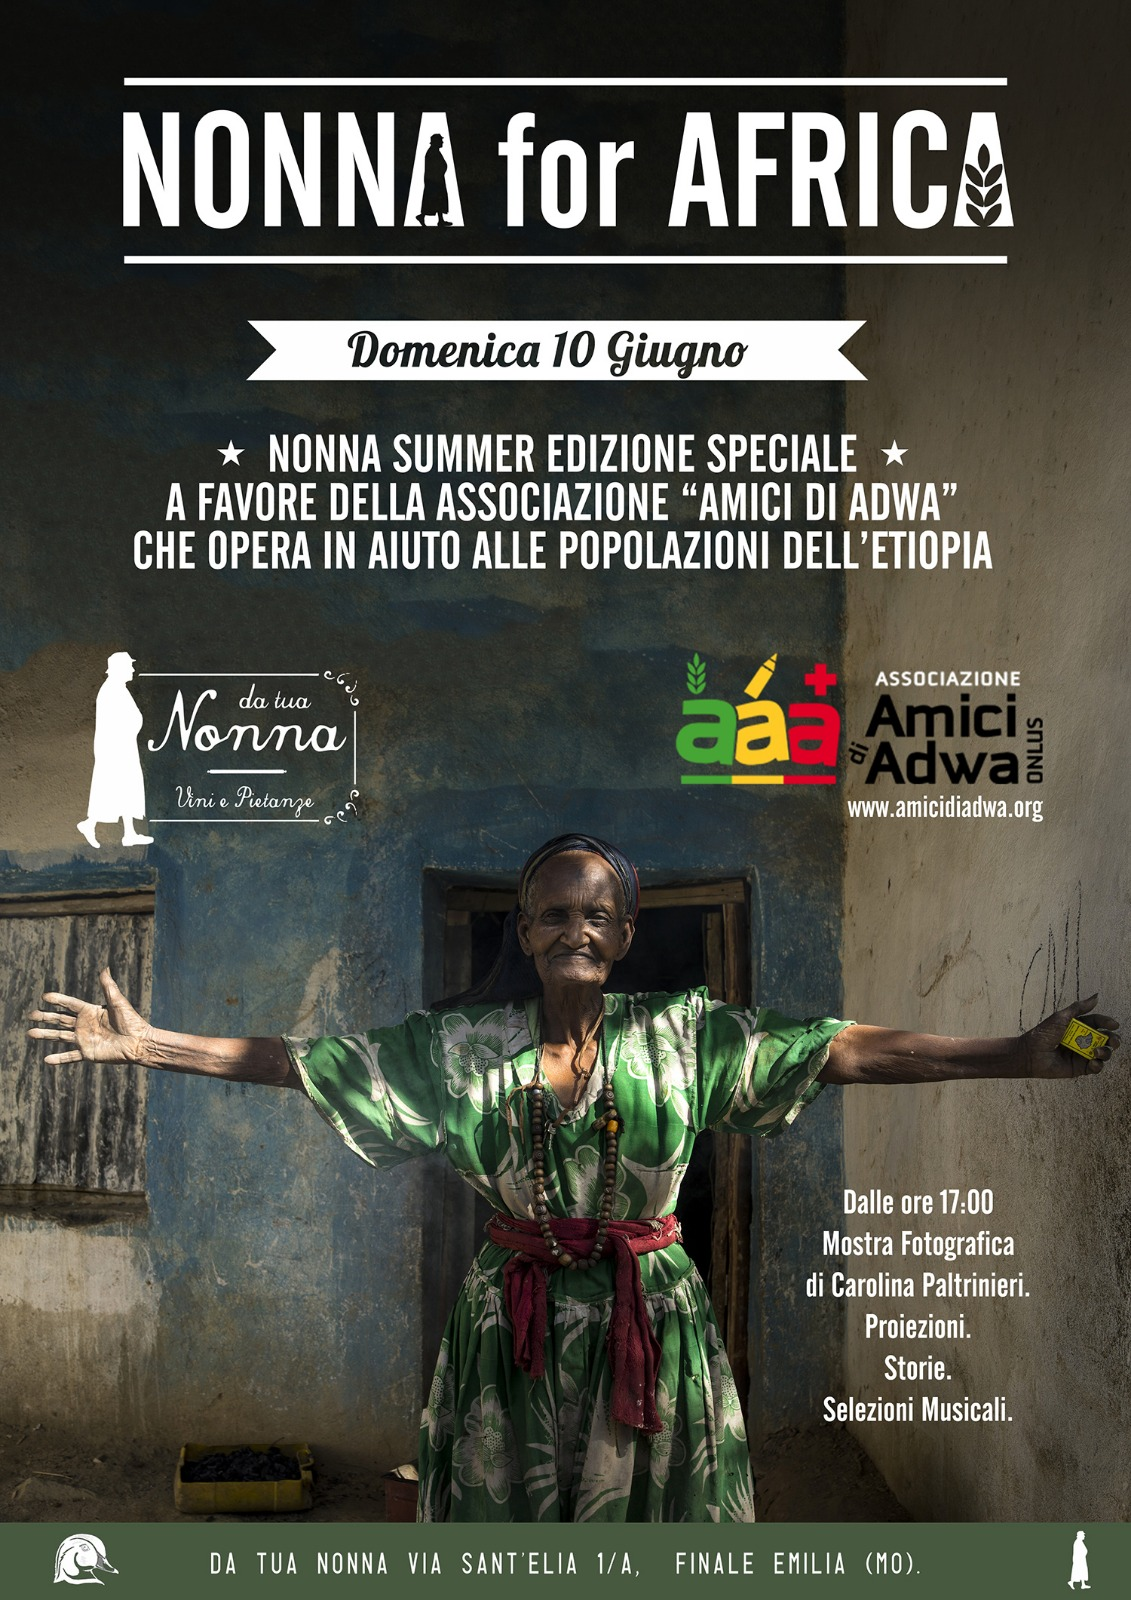 Nonna for Africa 10 06 2018